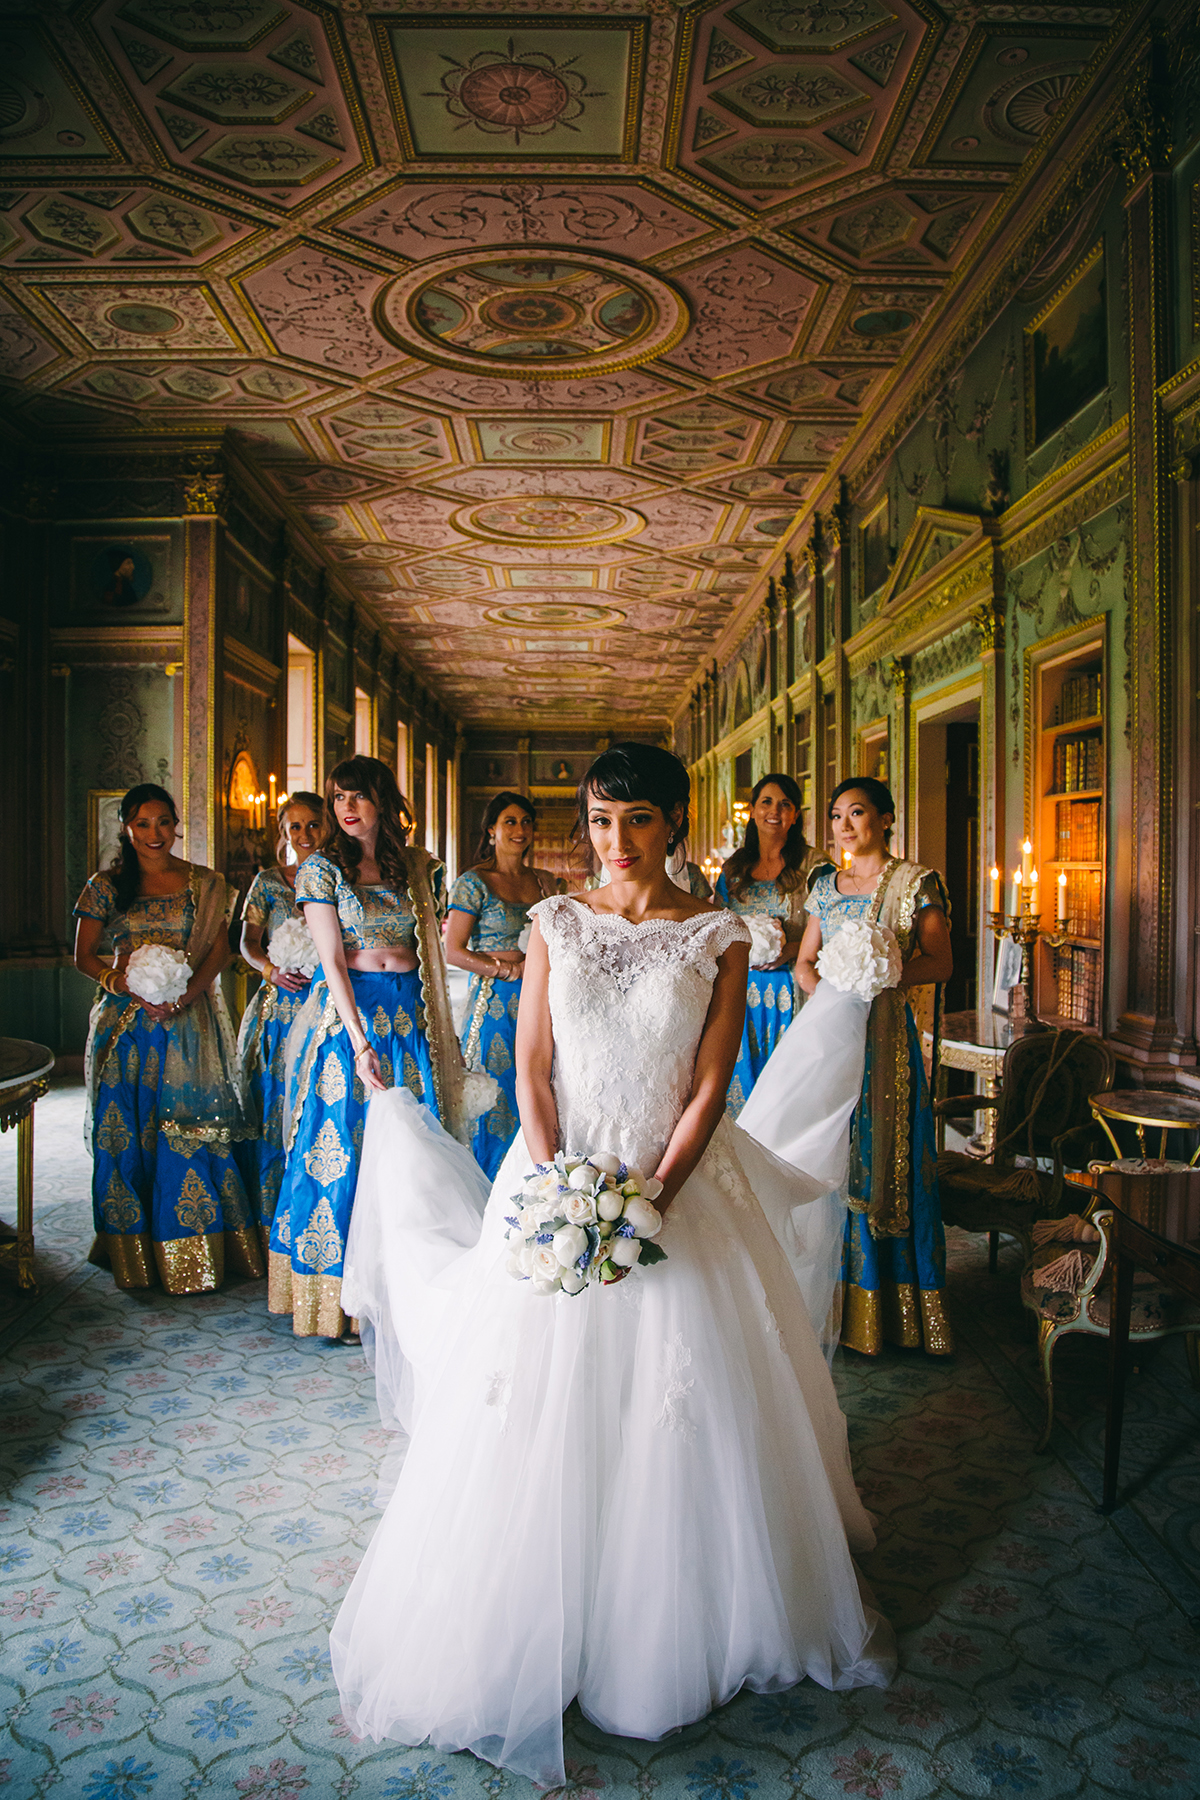 bride and bridesmaids in classical interior